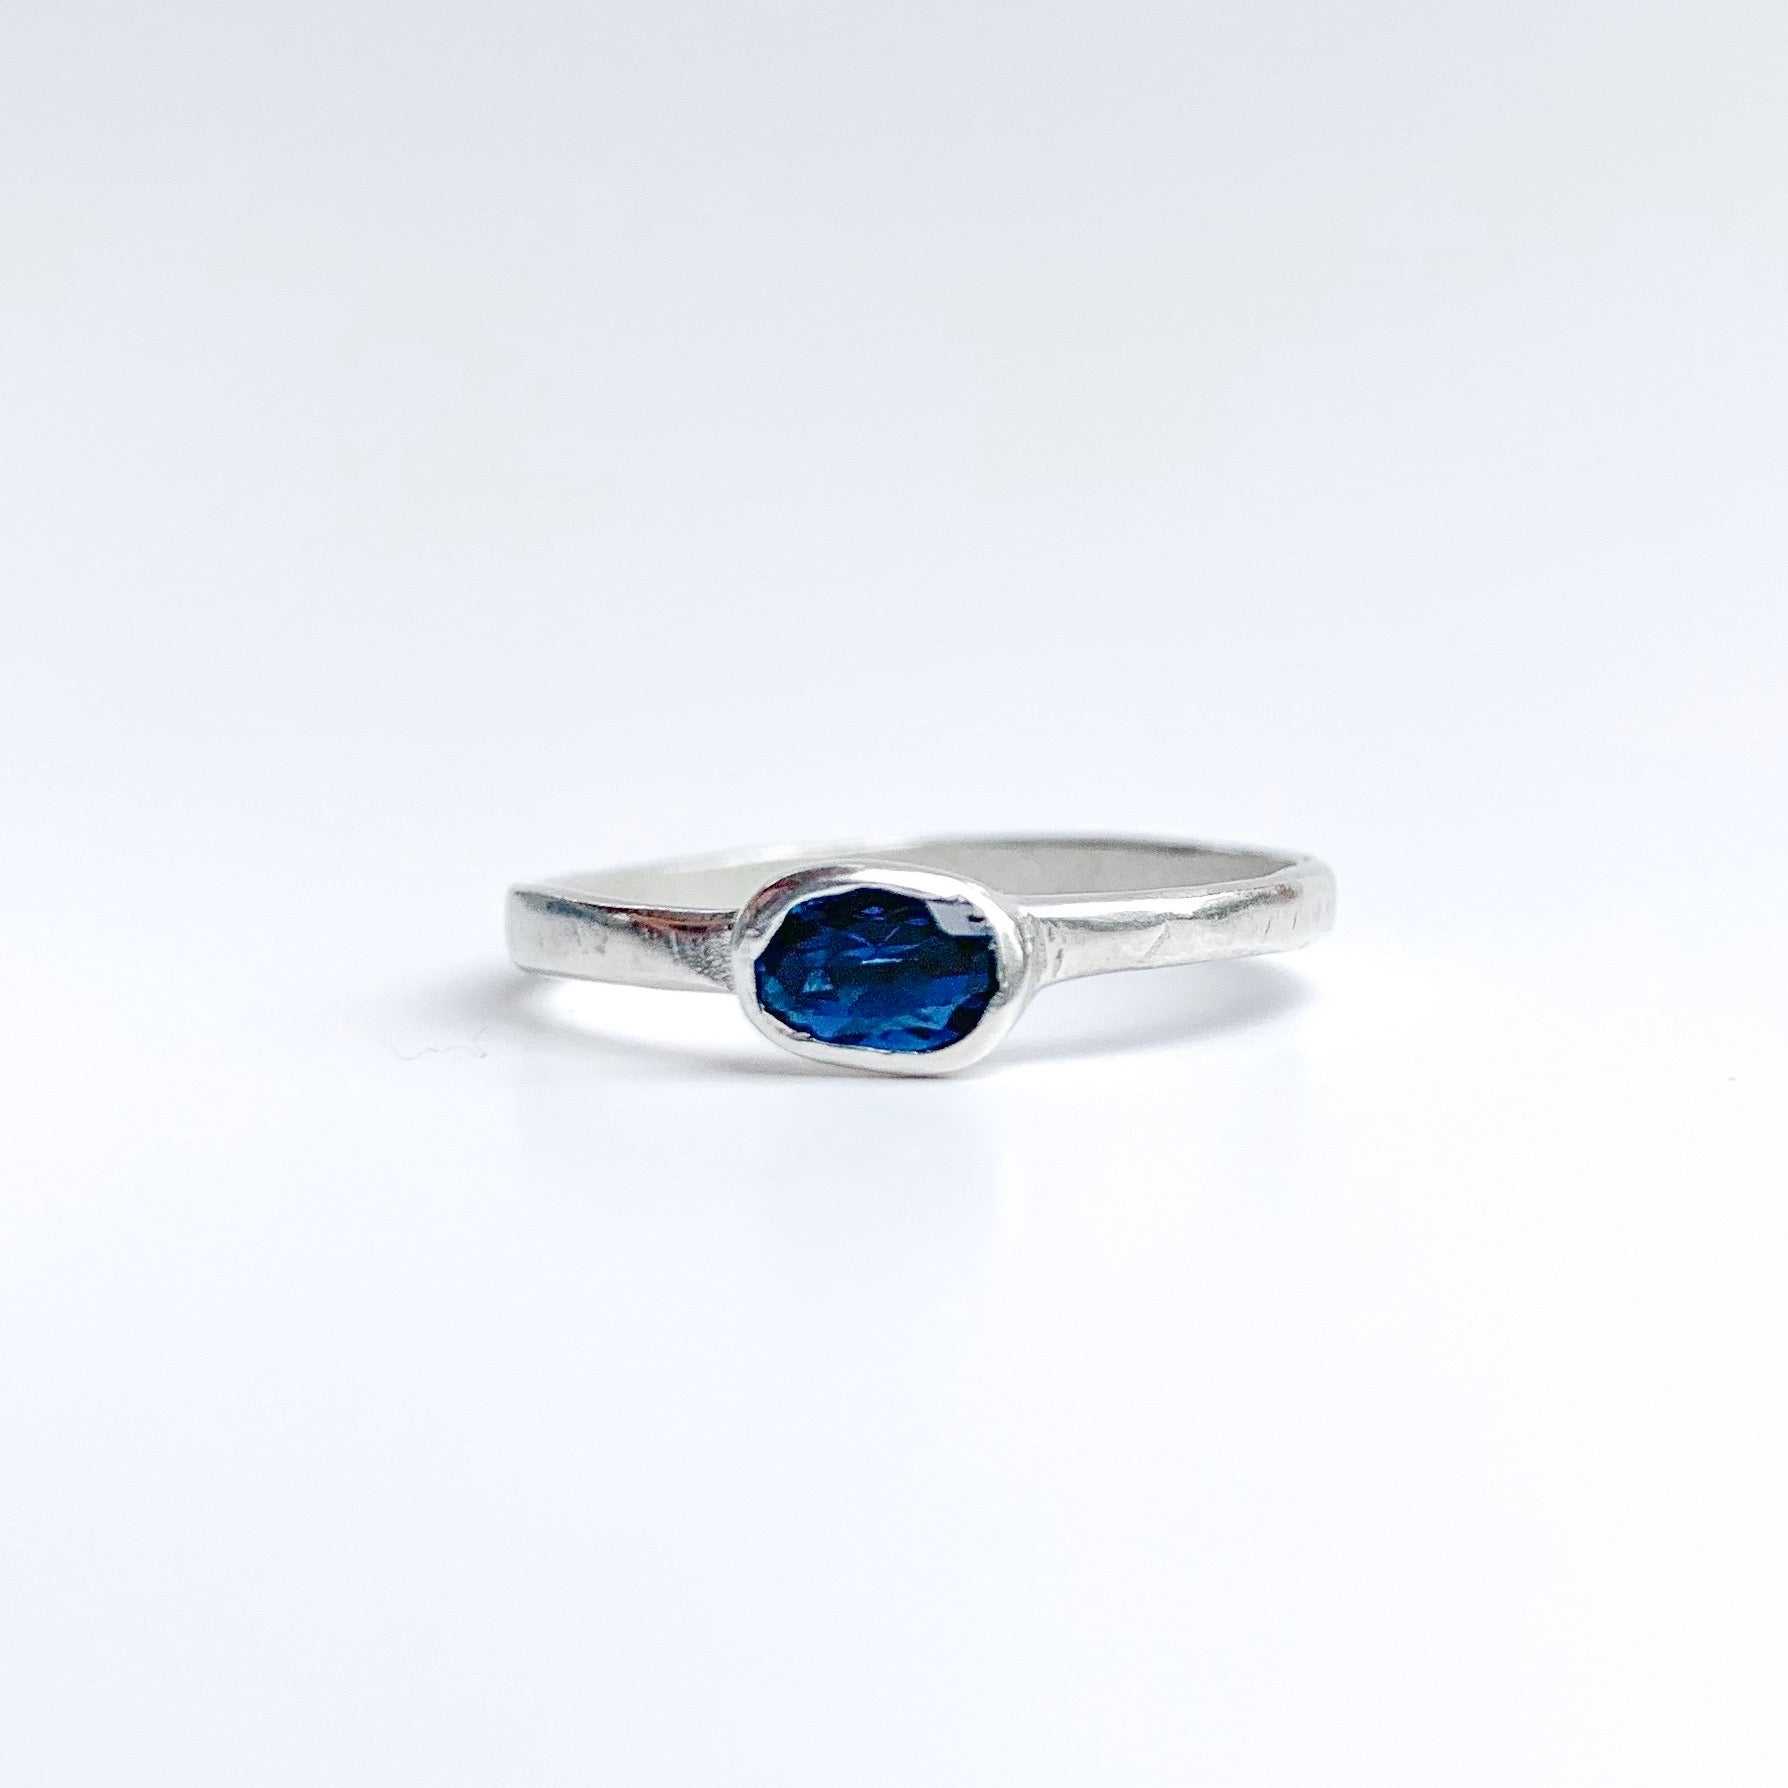 London Blue Ring